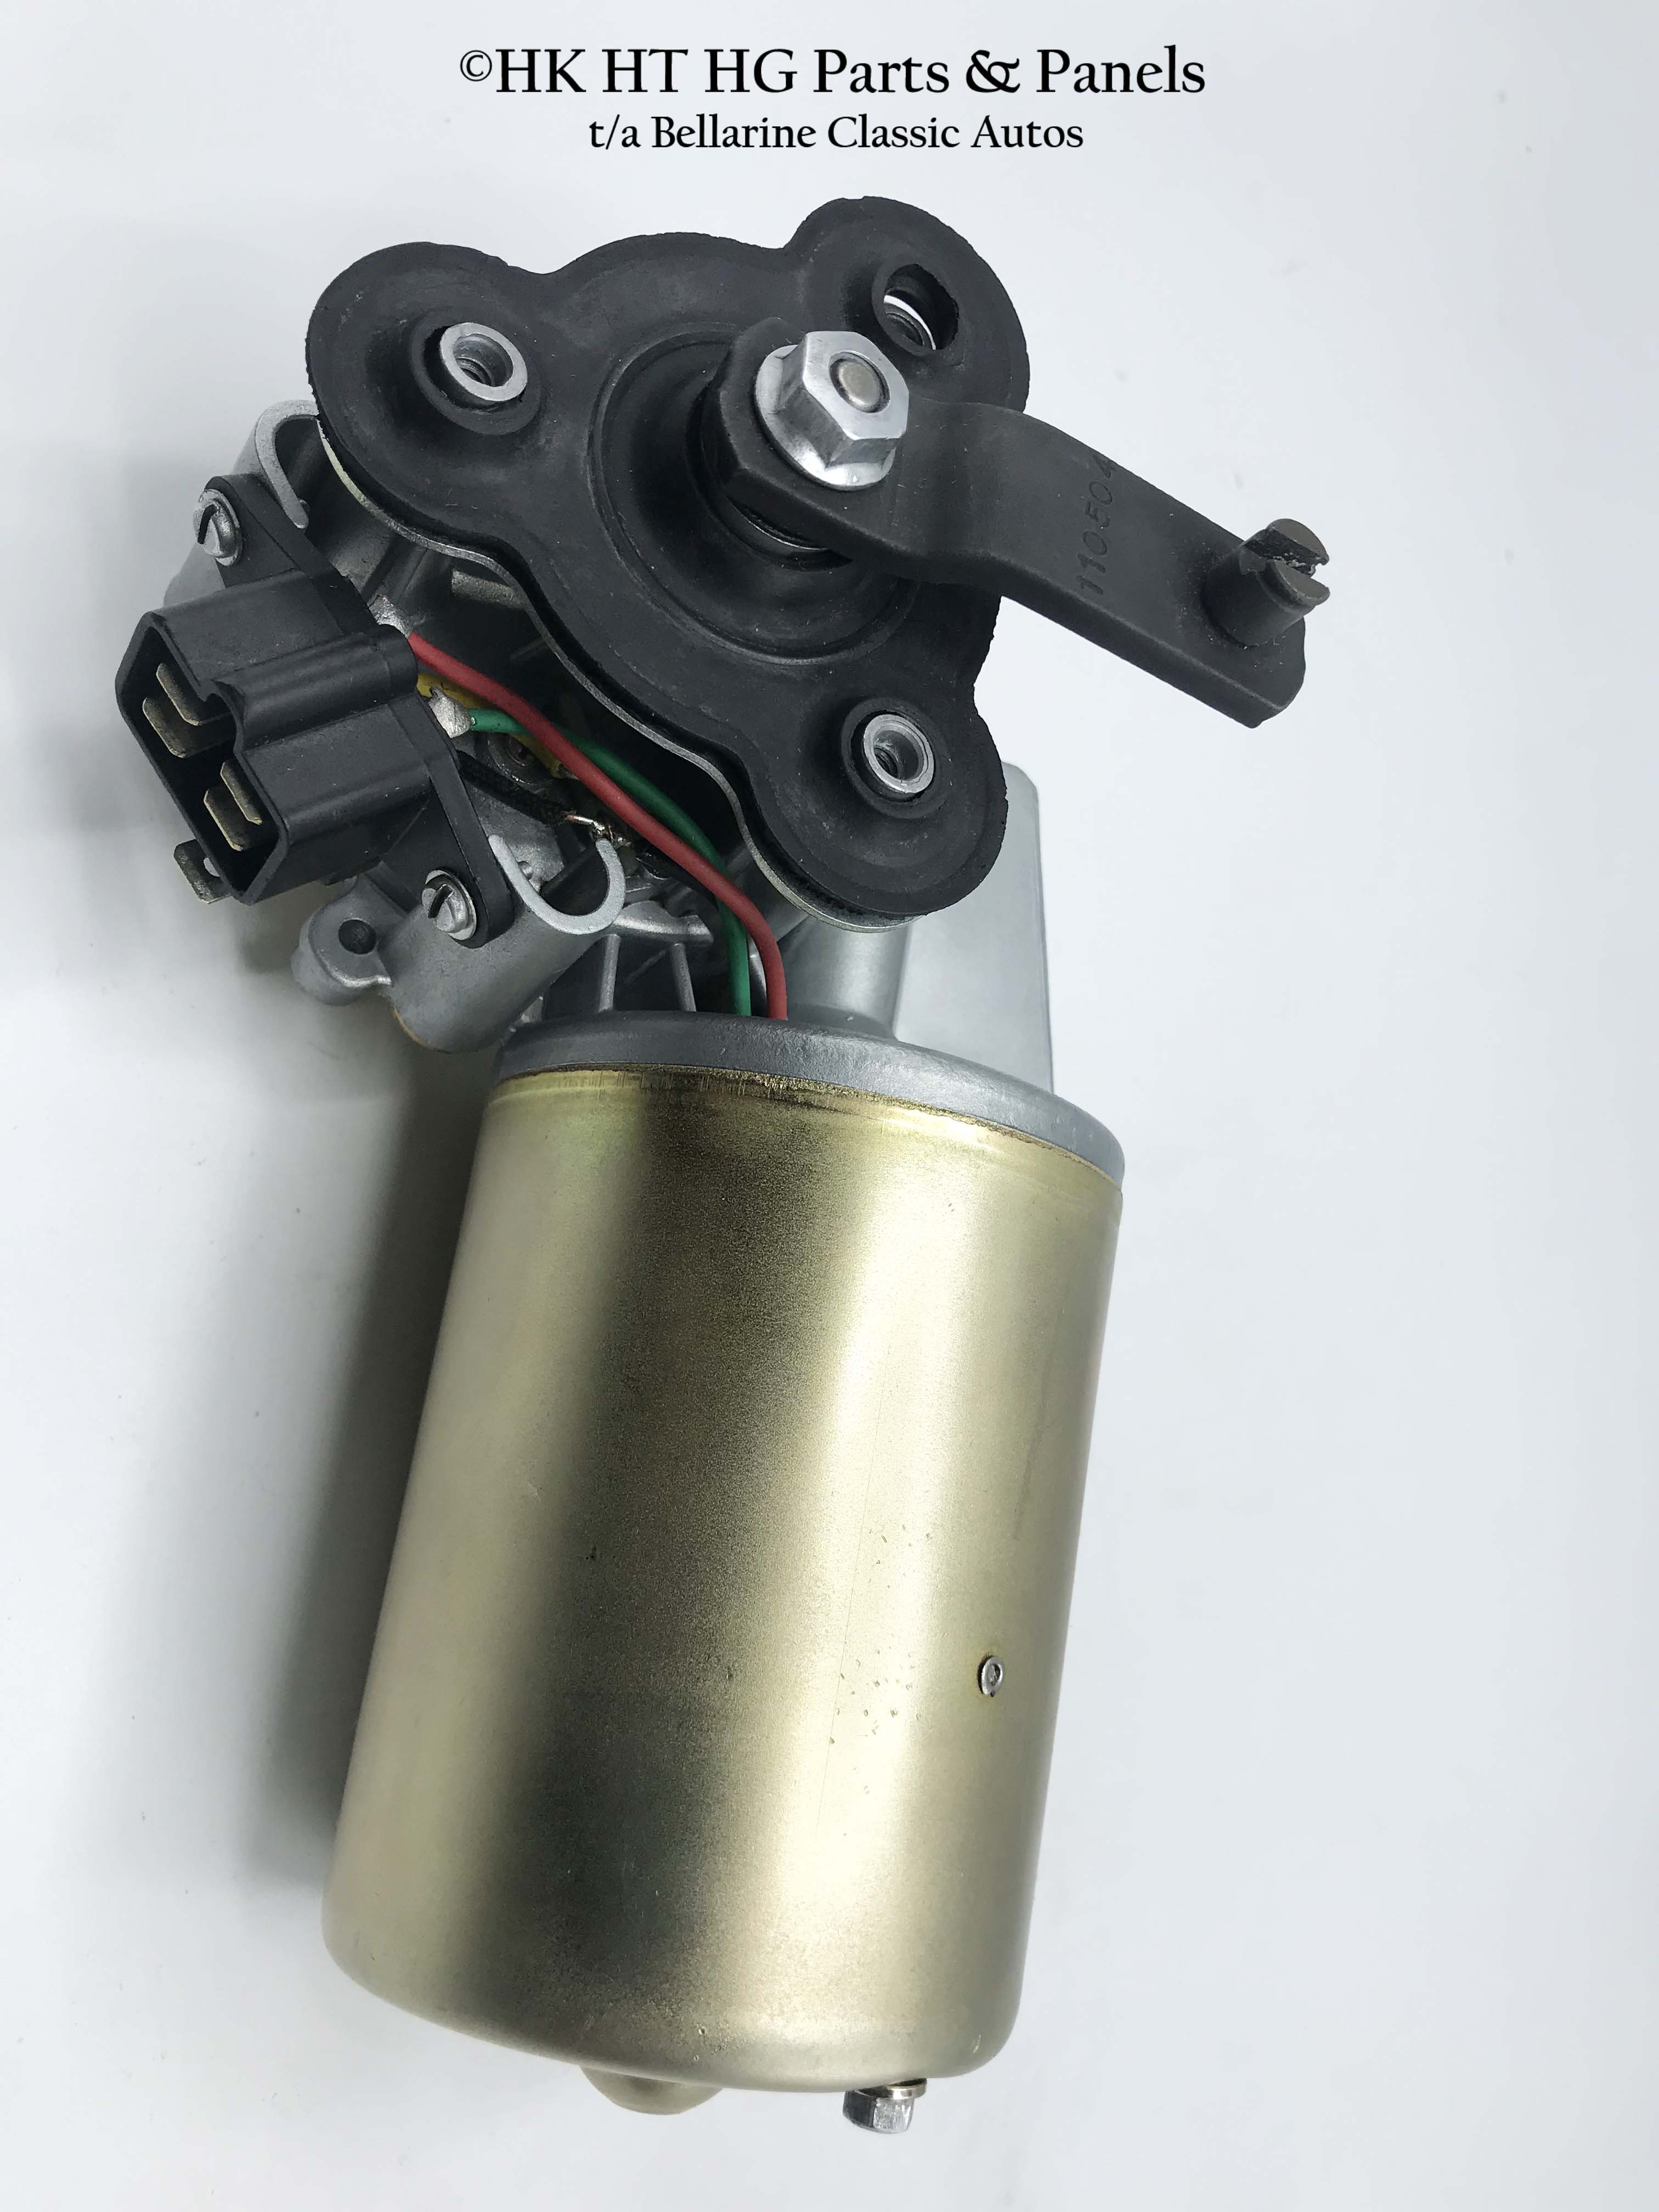 Hk Preslite Wiper Motor Assembly Part No 7432407 Fully Reconditioned